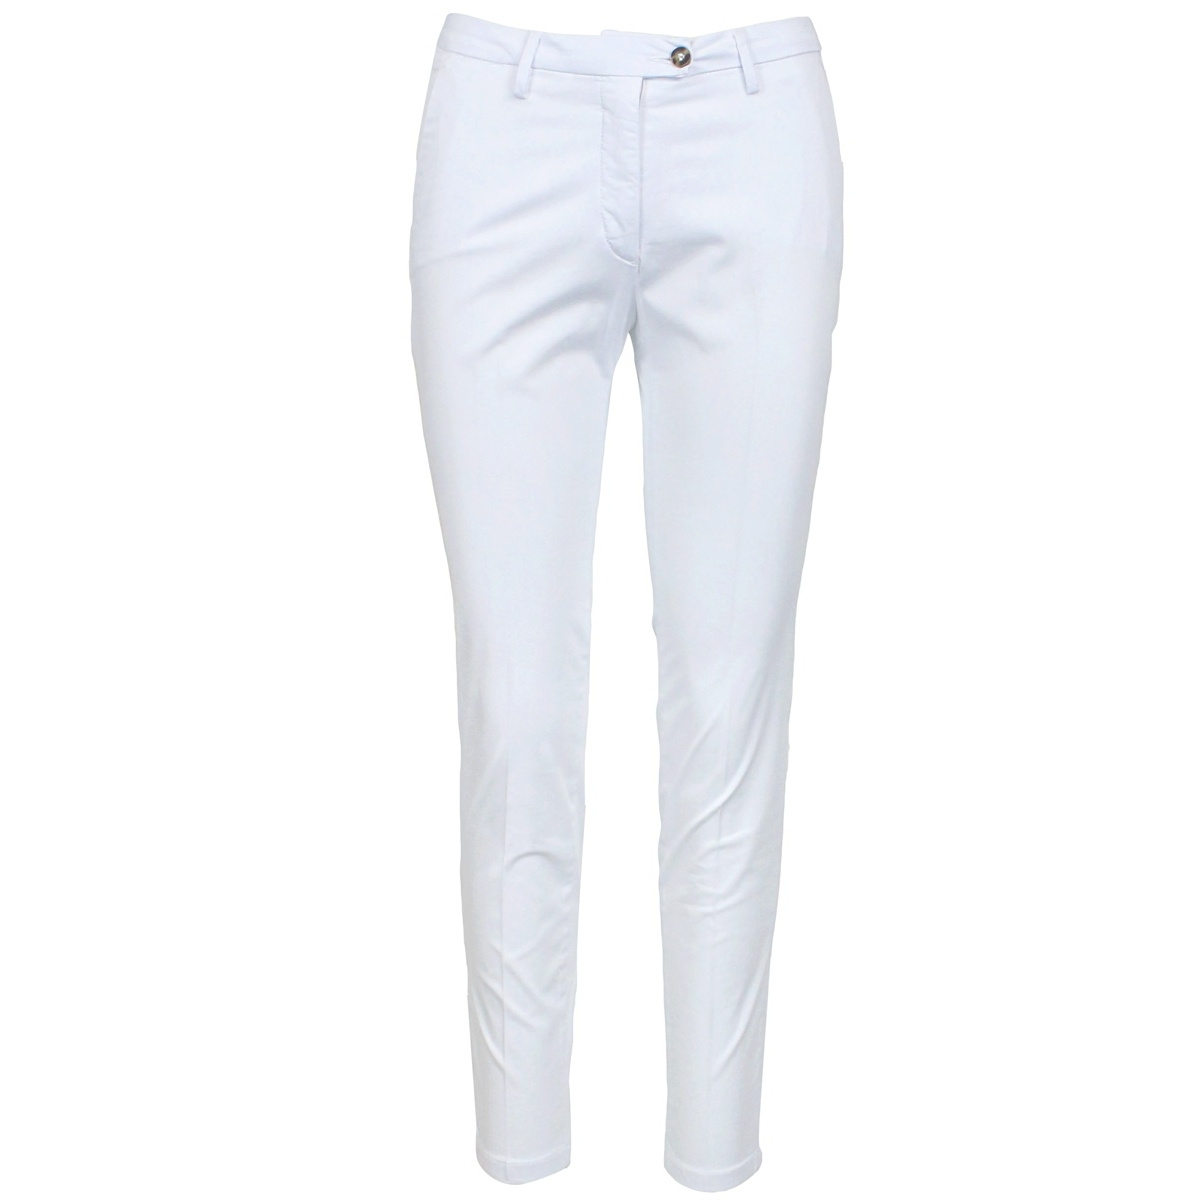 Cotton trousers with america pockets White MICHAEL COAL